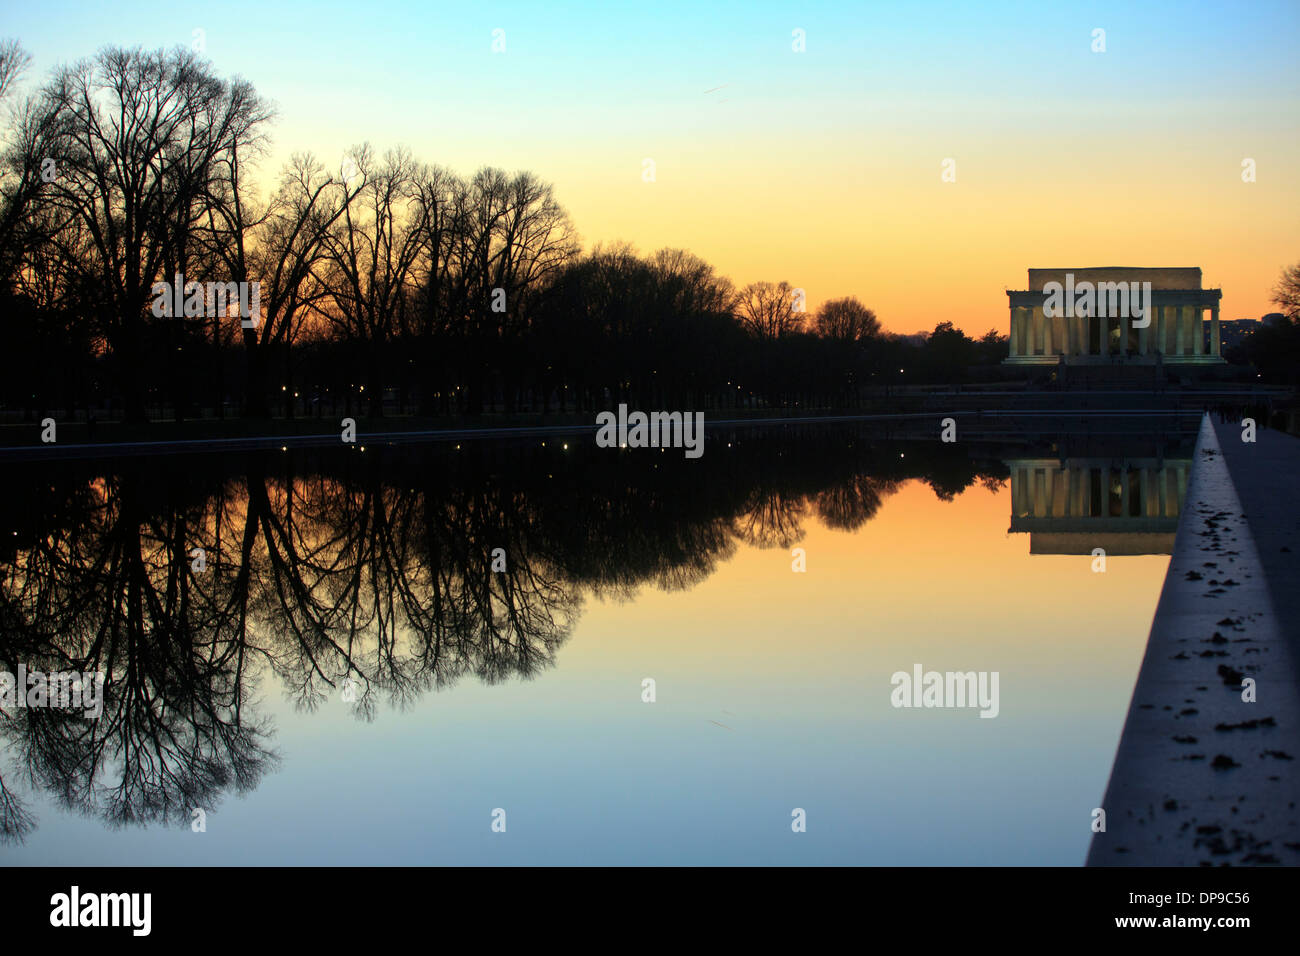 The reflecting pool looking towards the Lincoln Memorial memorial, Washington DC. 17 December, 2013. photo by Trevor Collens. - Stock Image